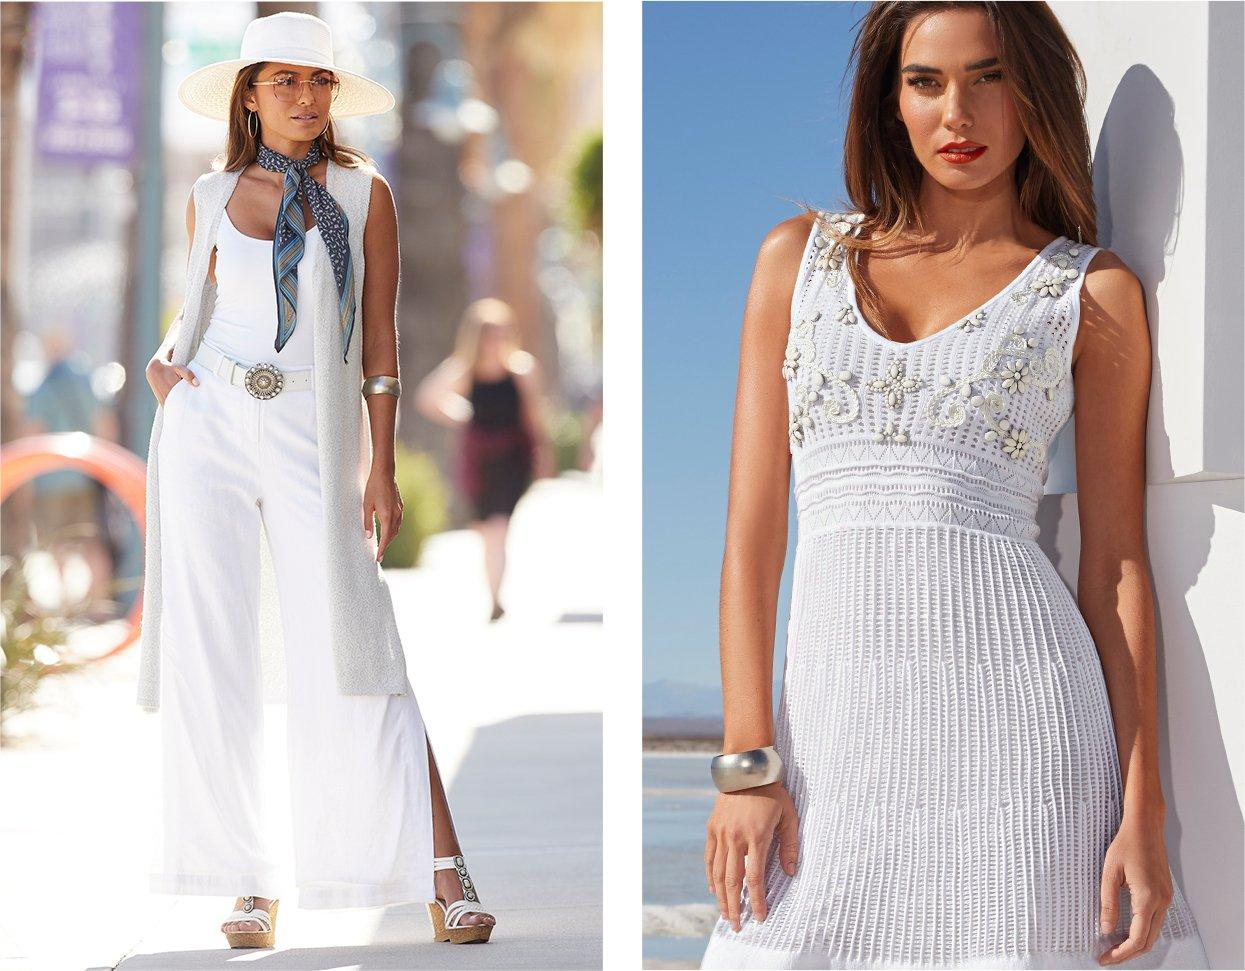 left model wearing a white sleeveless sweater duster, white tank top, whtie stone embellished belt, white linen pants, a scarf around her neck, and a white floppy hat. right model wearing a white shell embellished sleeveless sweater dress.